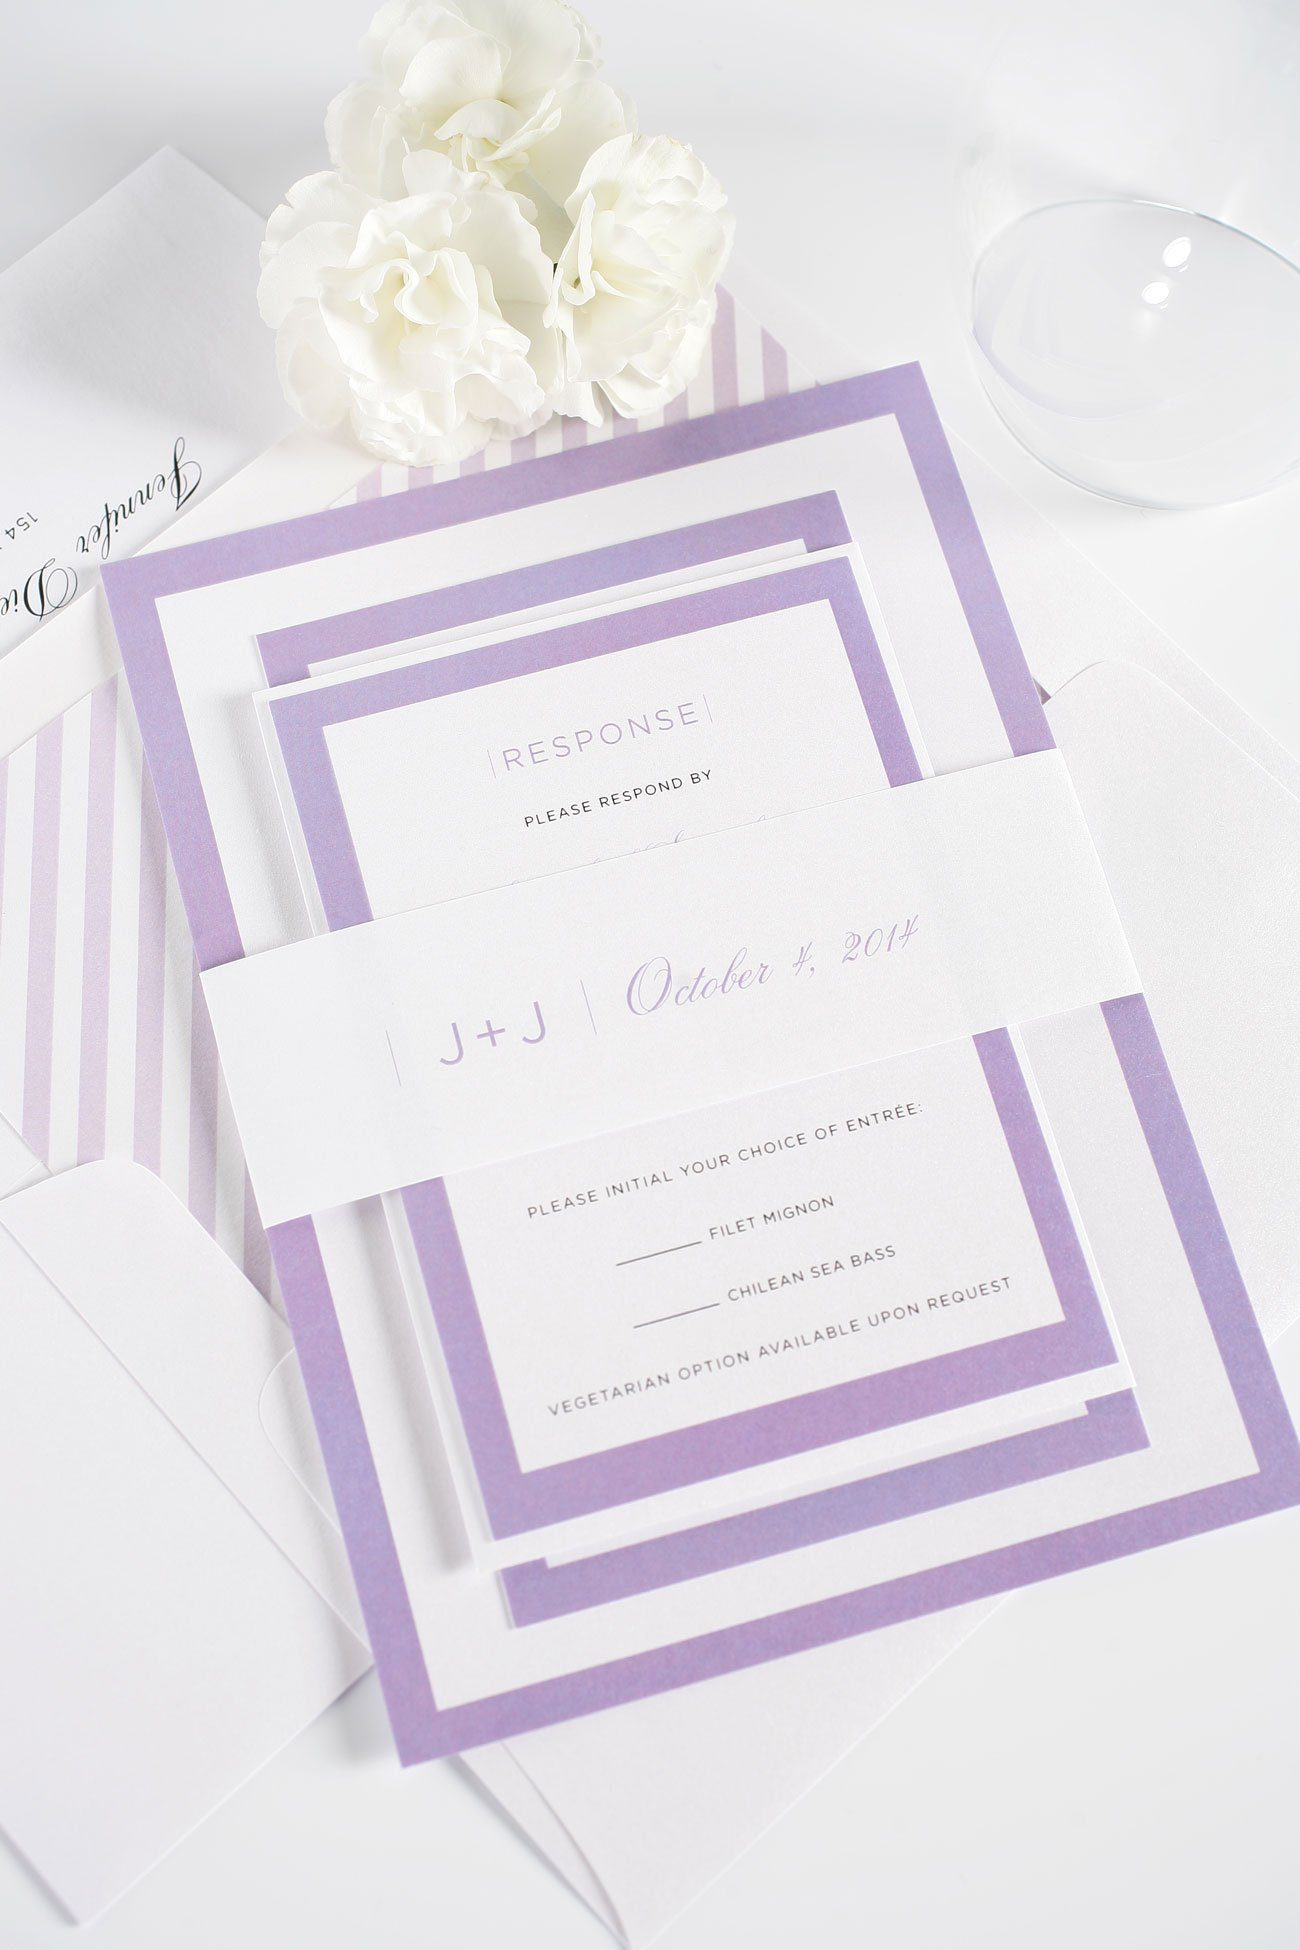 Modern wedding invitations with purple accents